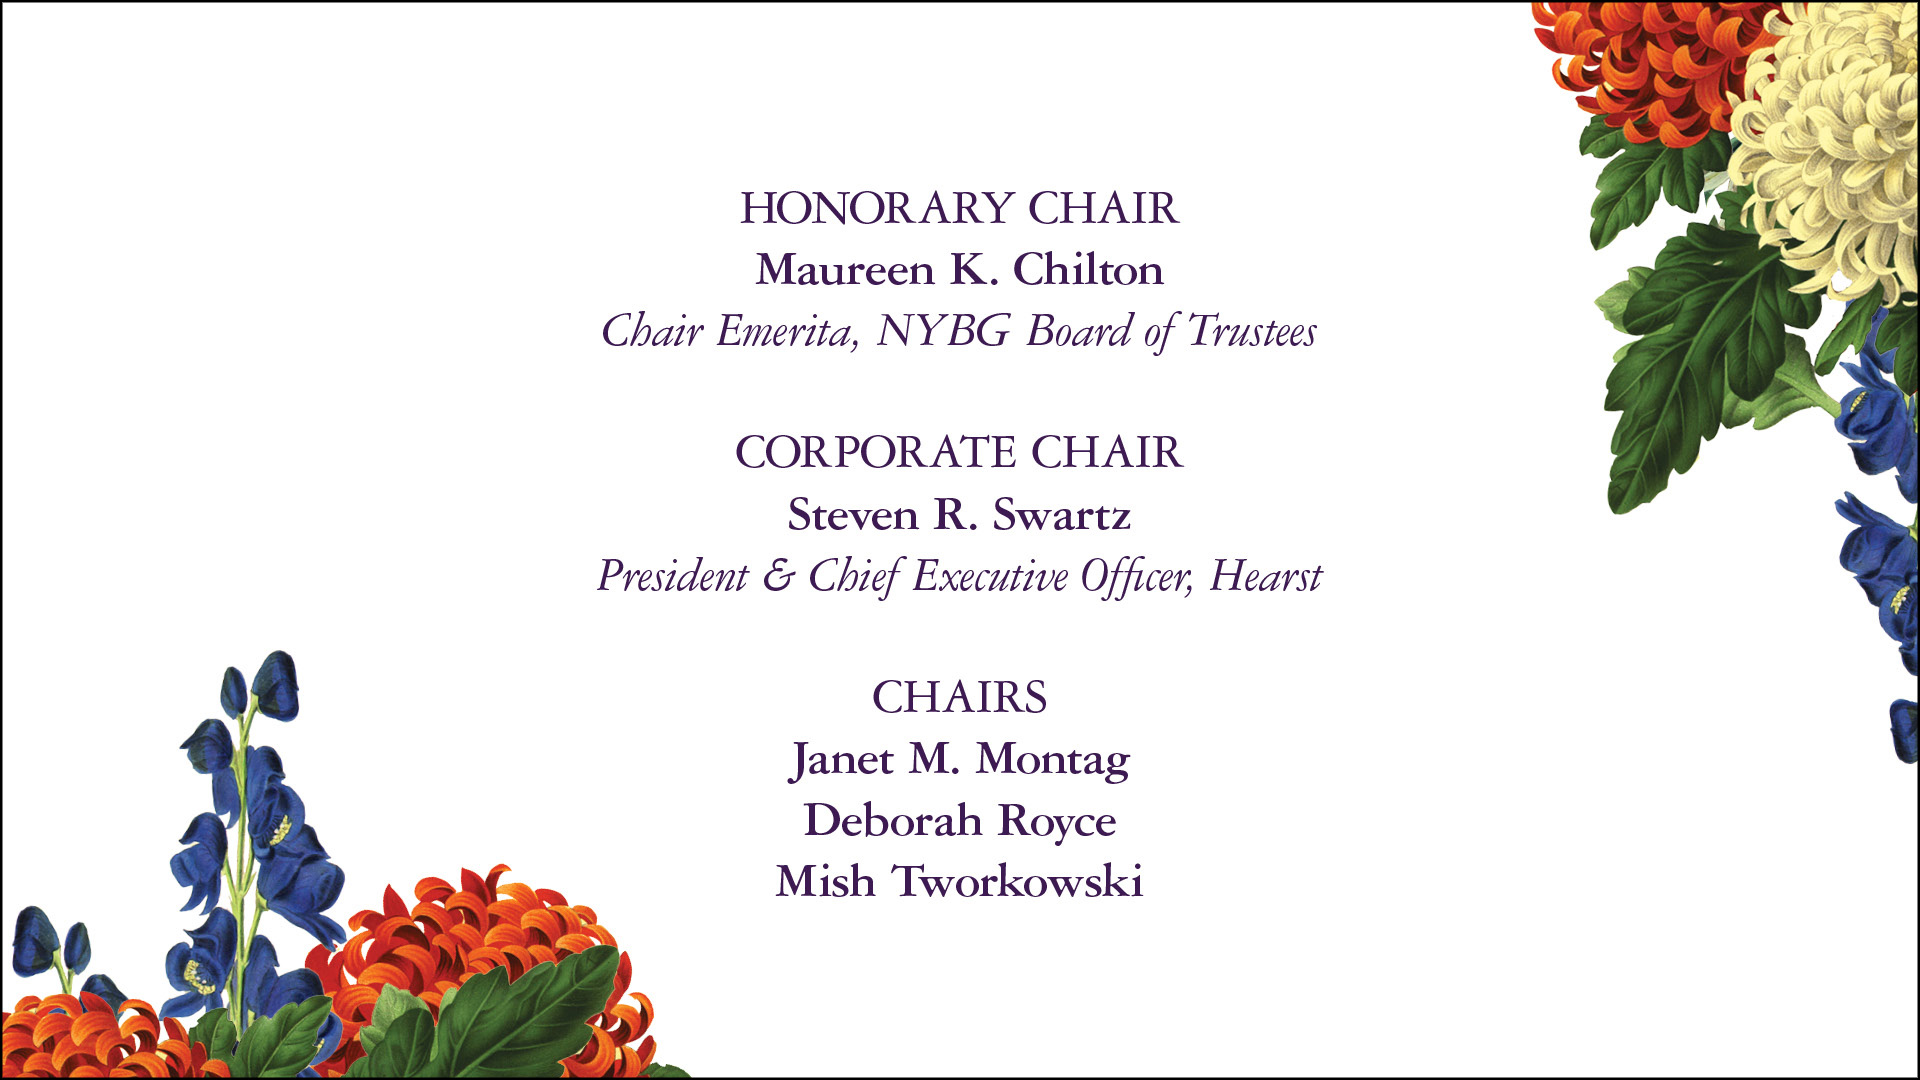 HONORARY CHAIR Maureen K. Chilton Chair Emerita, NYBG Board of Trustees CORPORATE CHAIR Steven R. Swartz President & Chief Executive Officer, Hearst CHAIRS Janet M. Montag Deborah Royce Mish Tworkowski